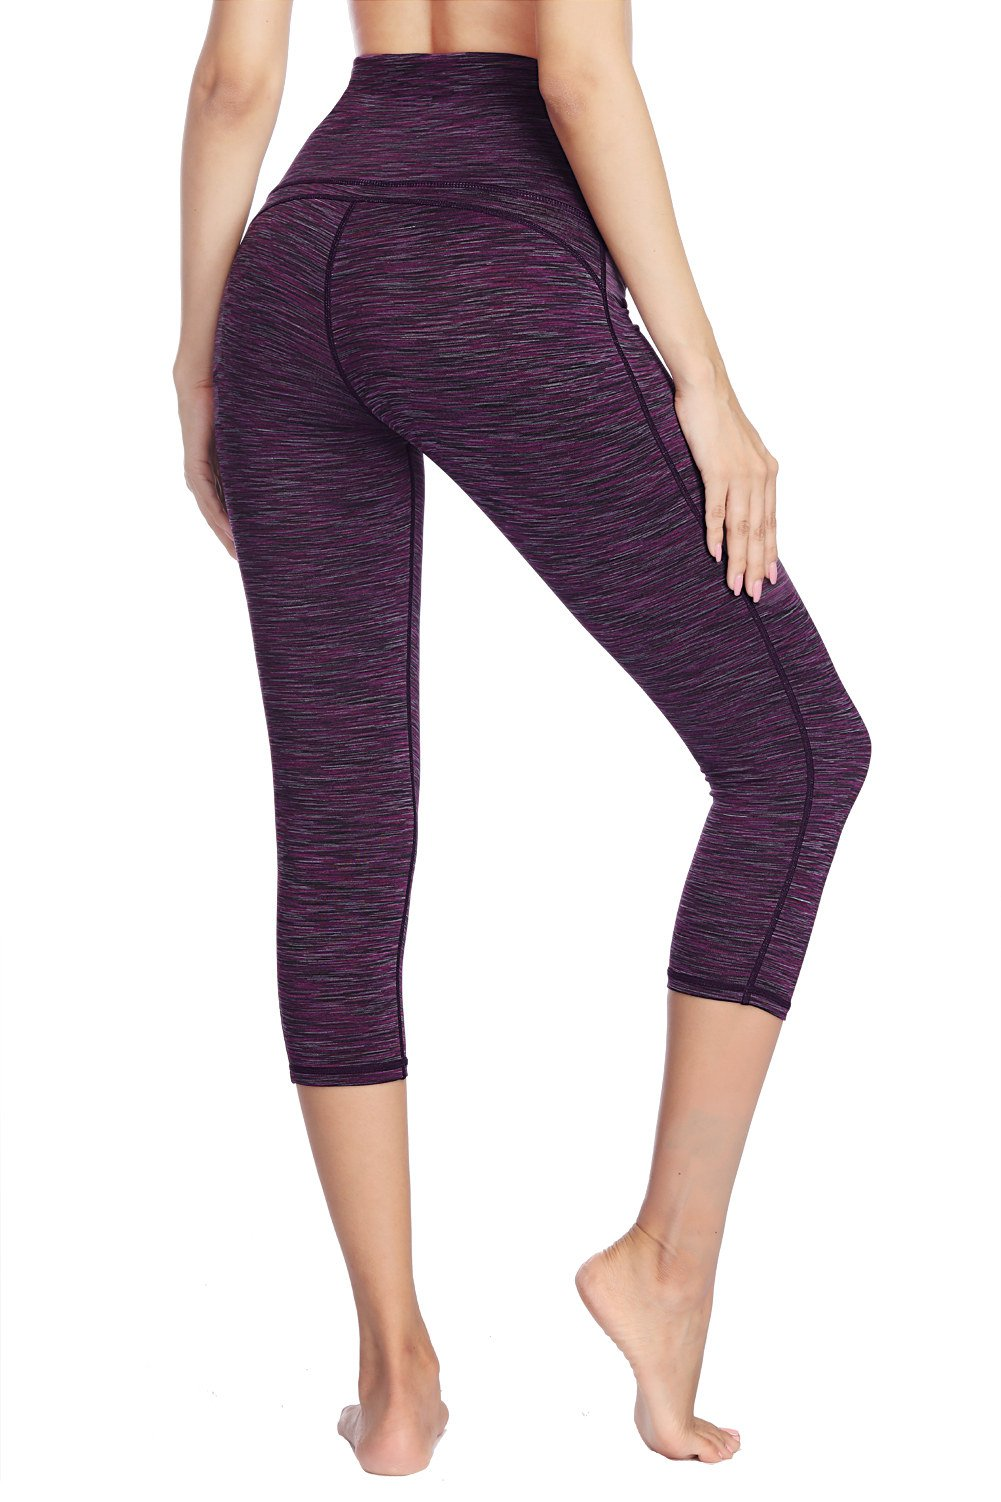 Dragon Fit Compression Yoga Pants Power Stretch Workout Leggings with High Waist Tummy Control (Large, Capri-Purple) by Dragon Fit (Image #4)